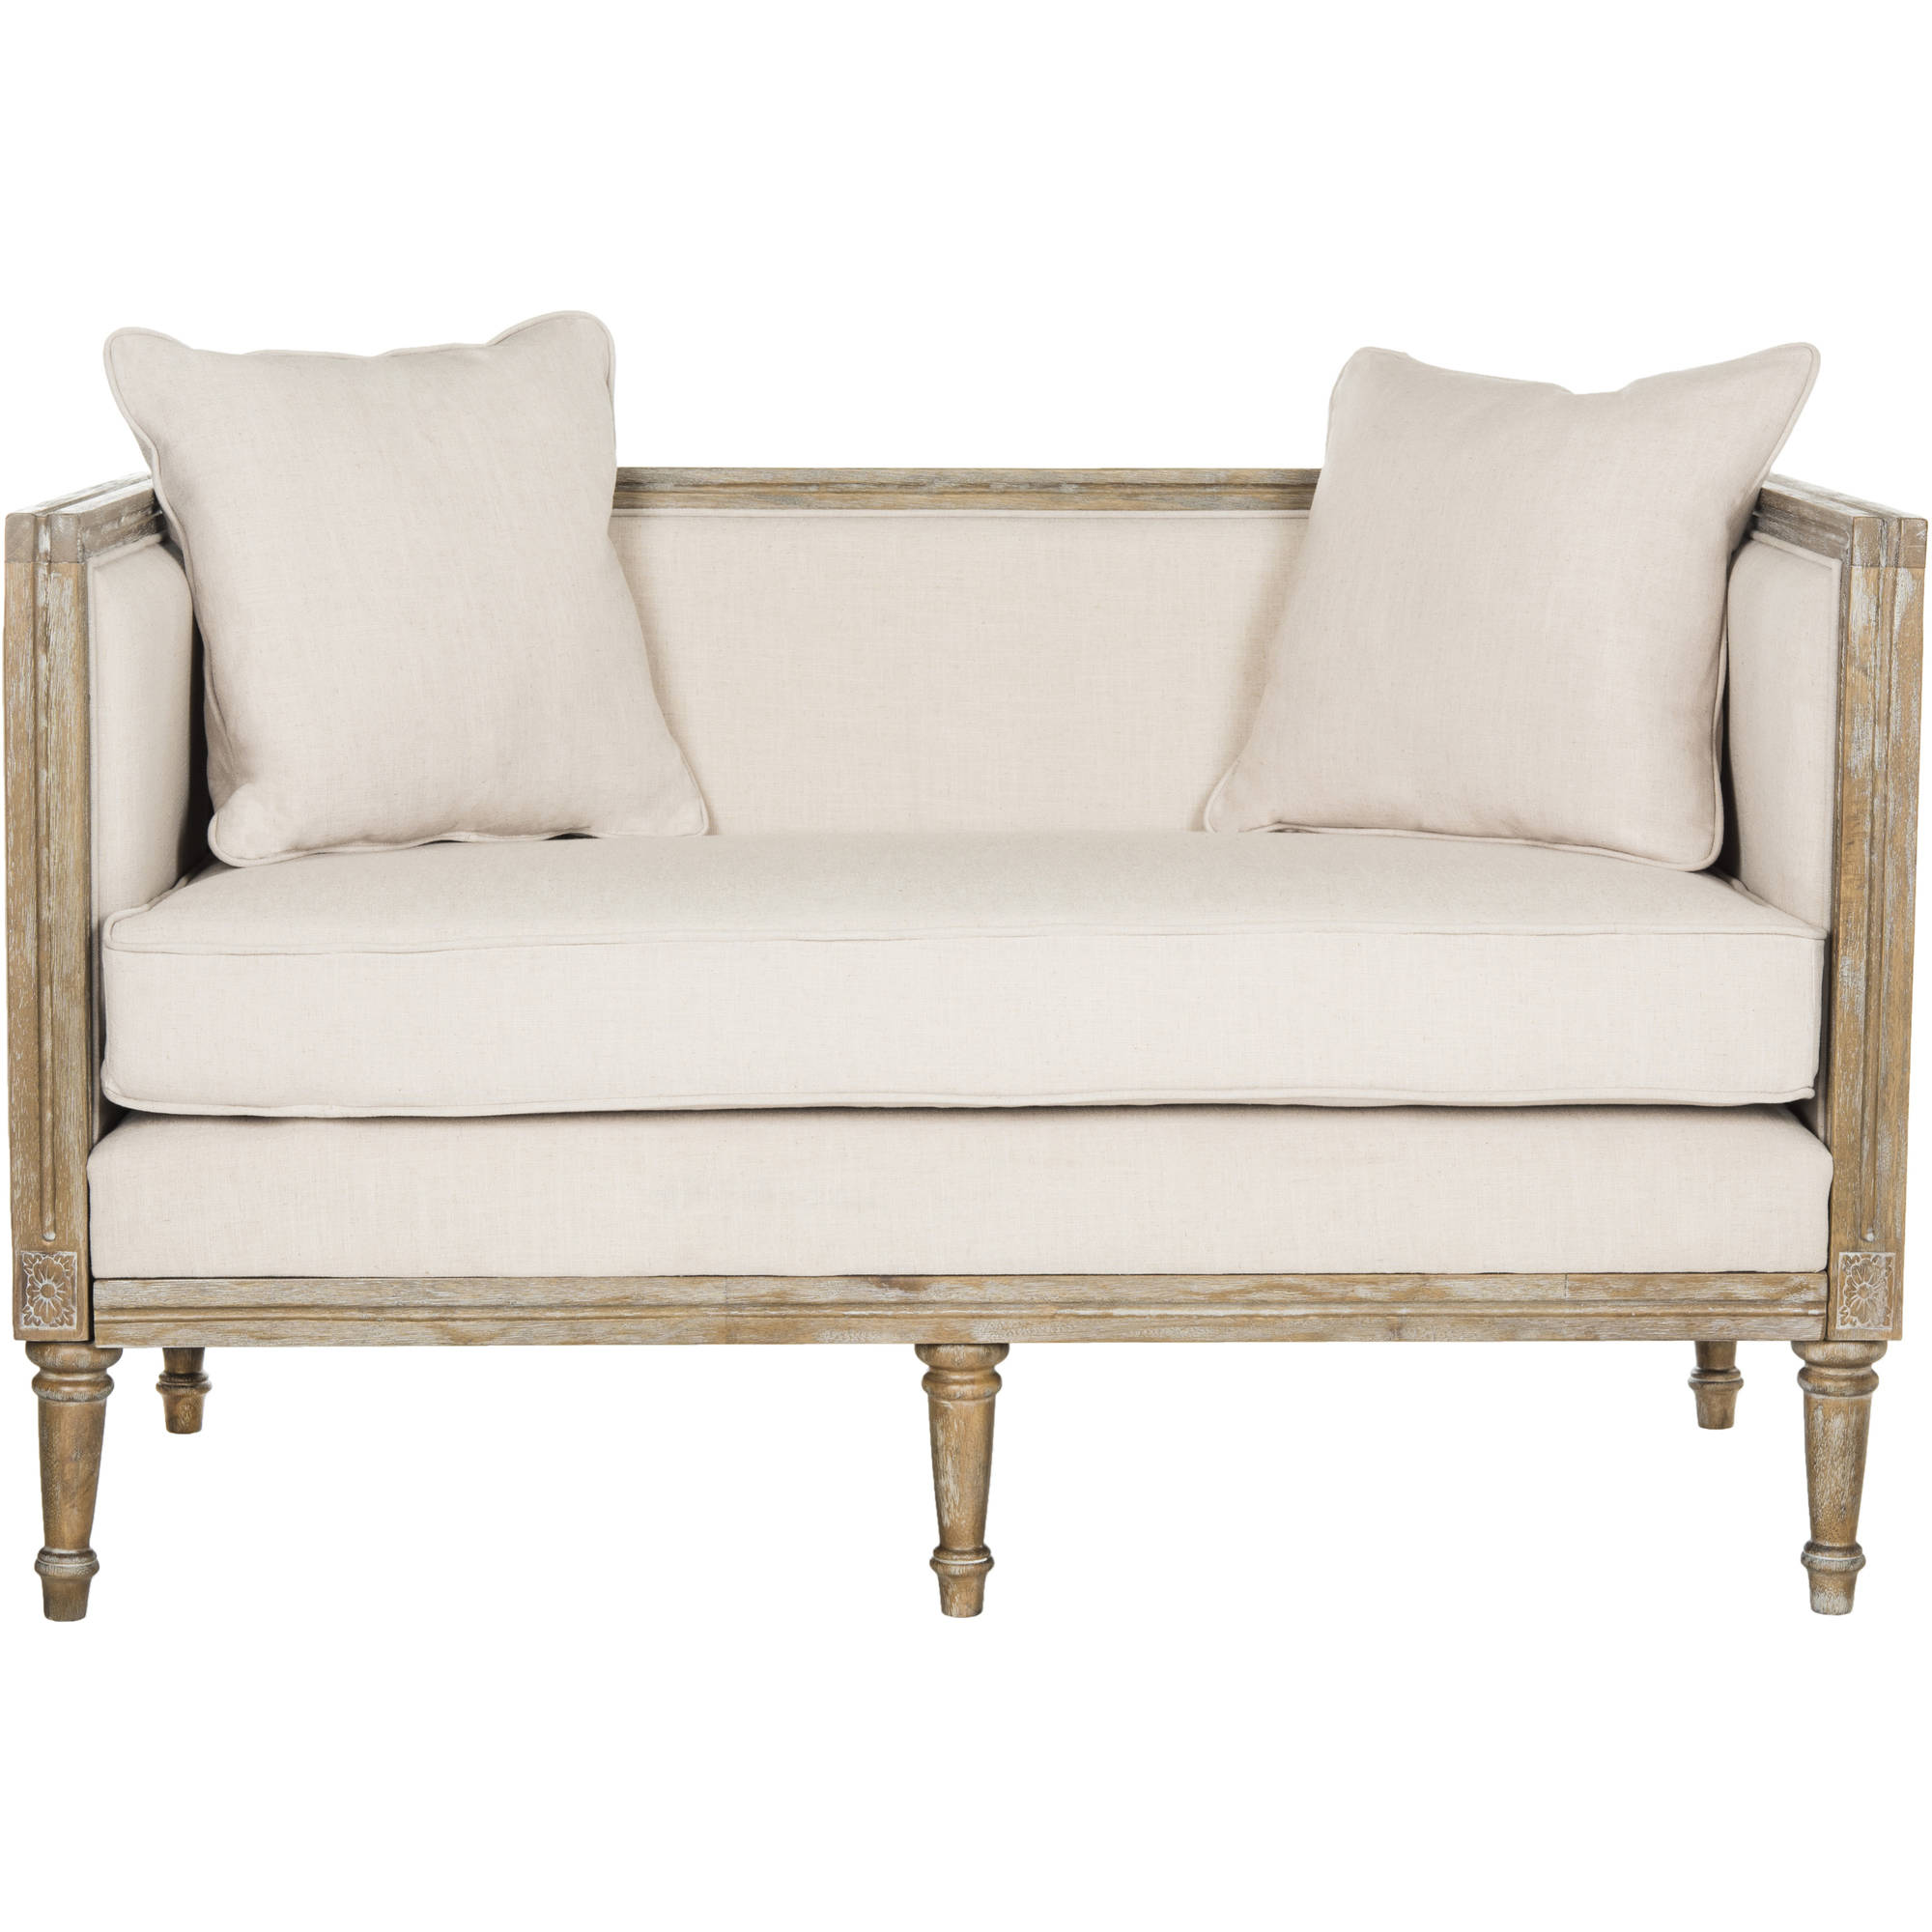 Safavieh Leandra Rustic French Country Settee with 2 Pillows, Multiple Colors